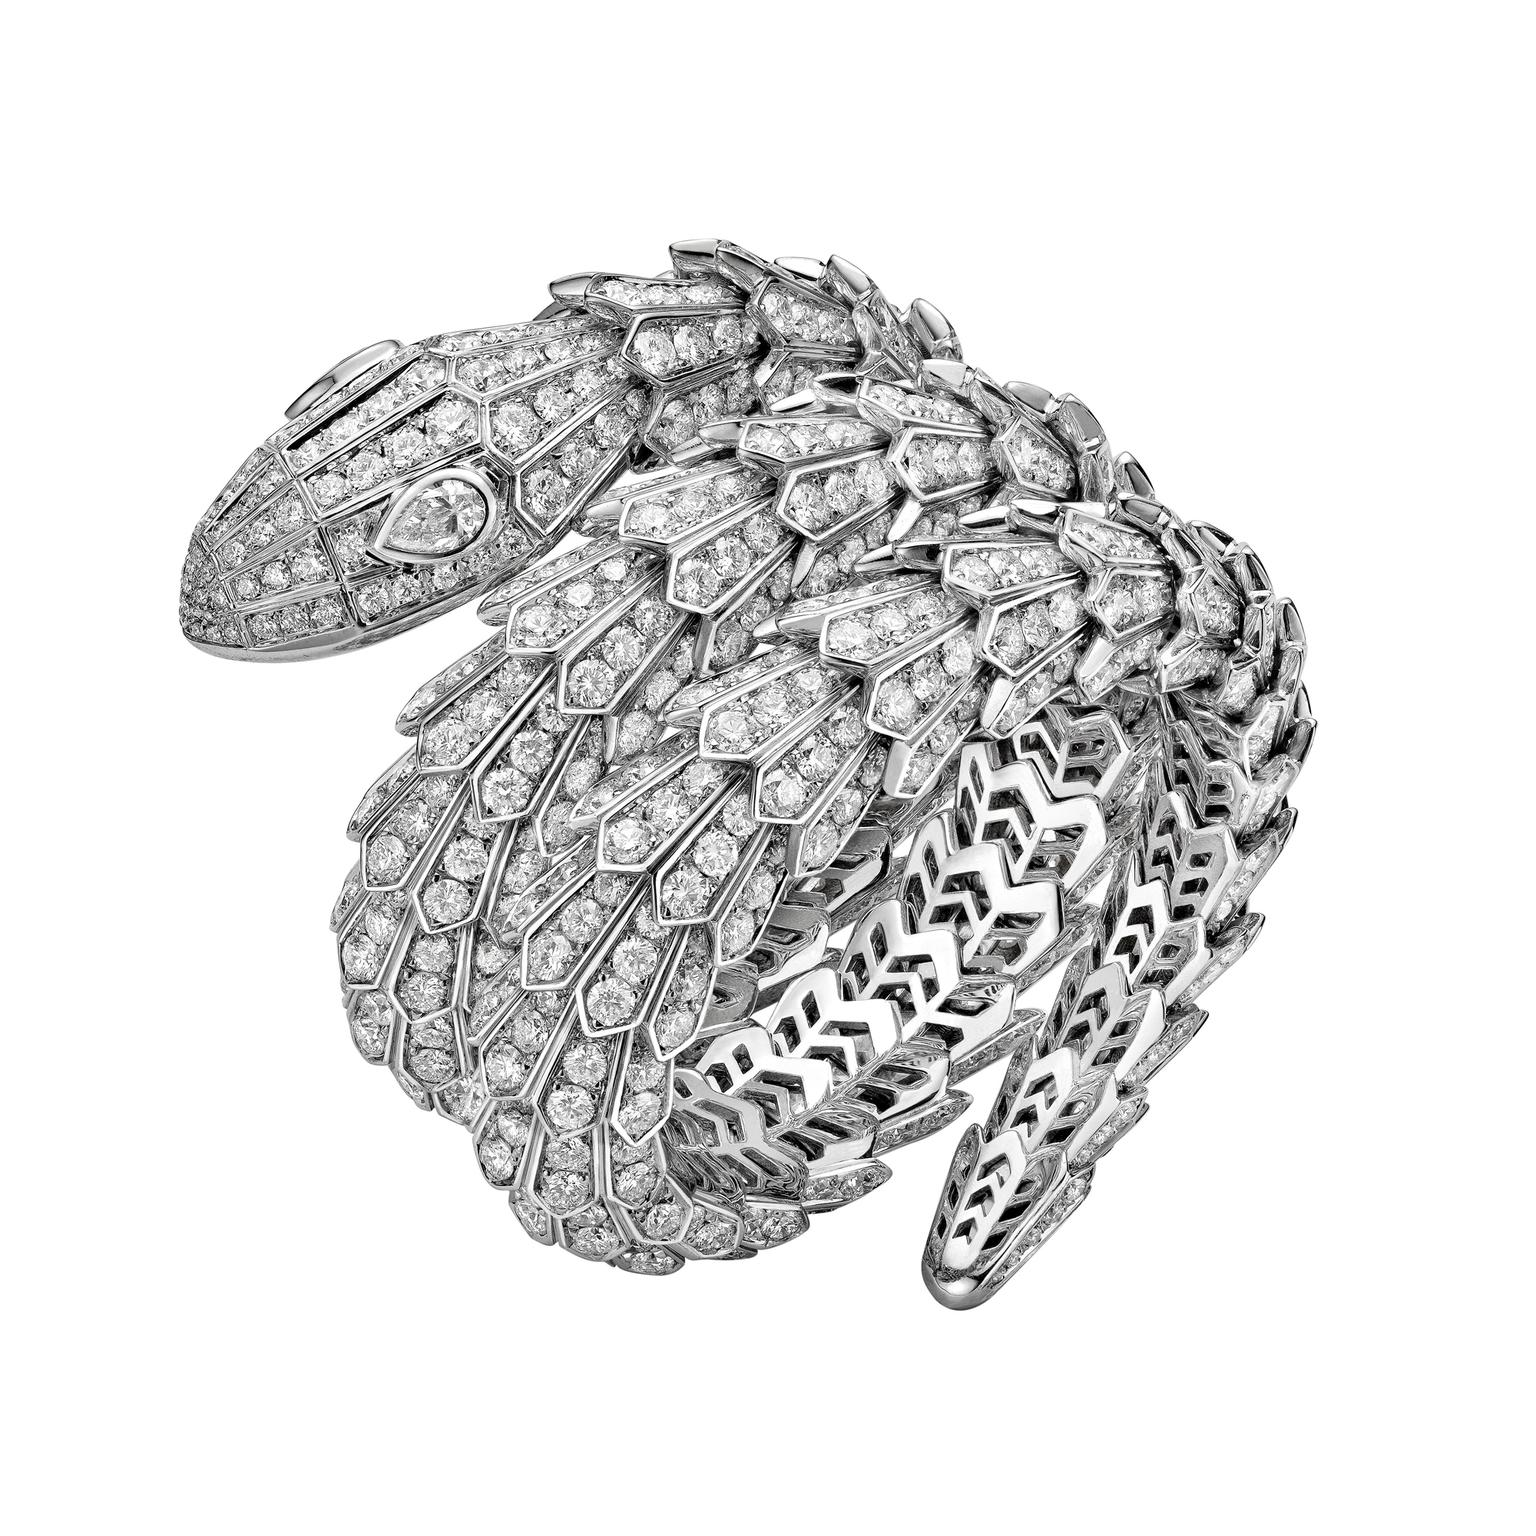 Bulgari High jewellery Serpenti bracelet worn by Bella Hadid